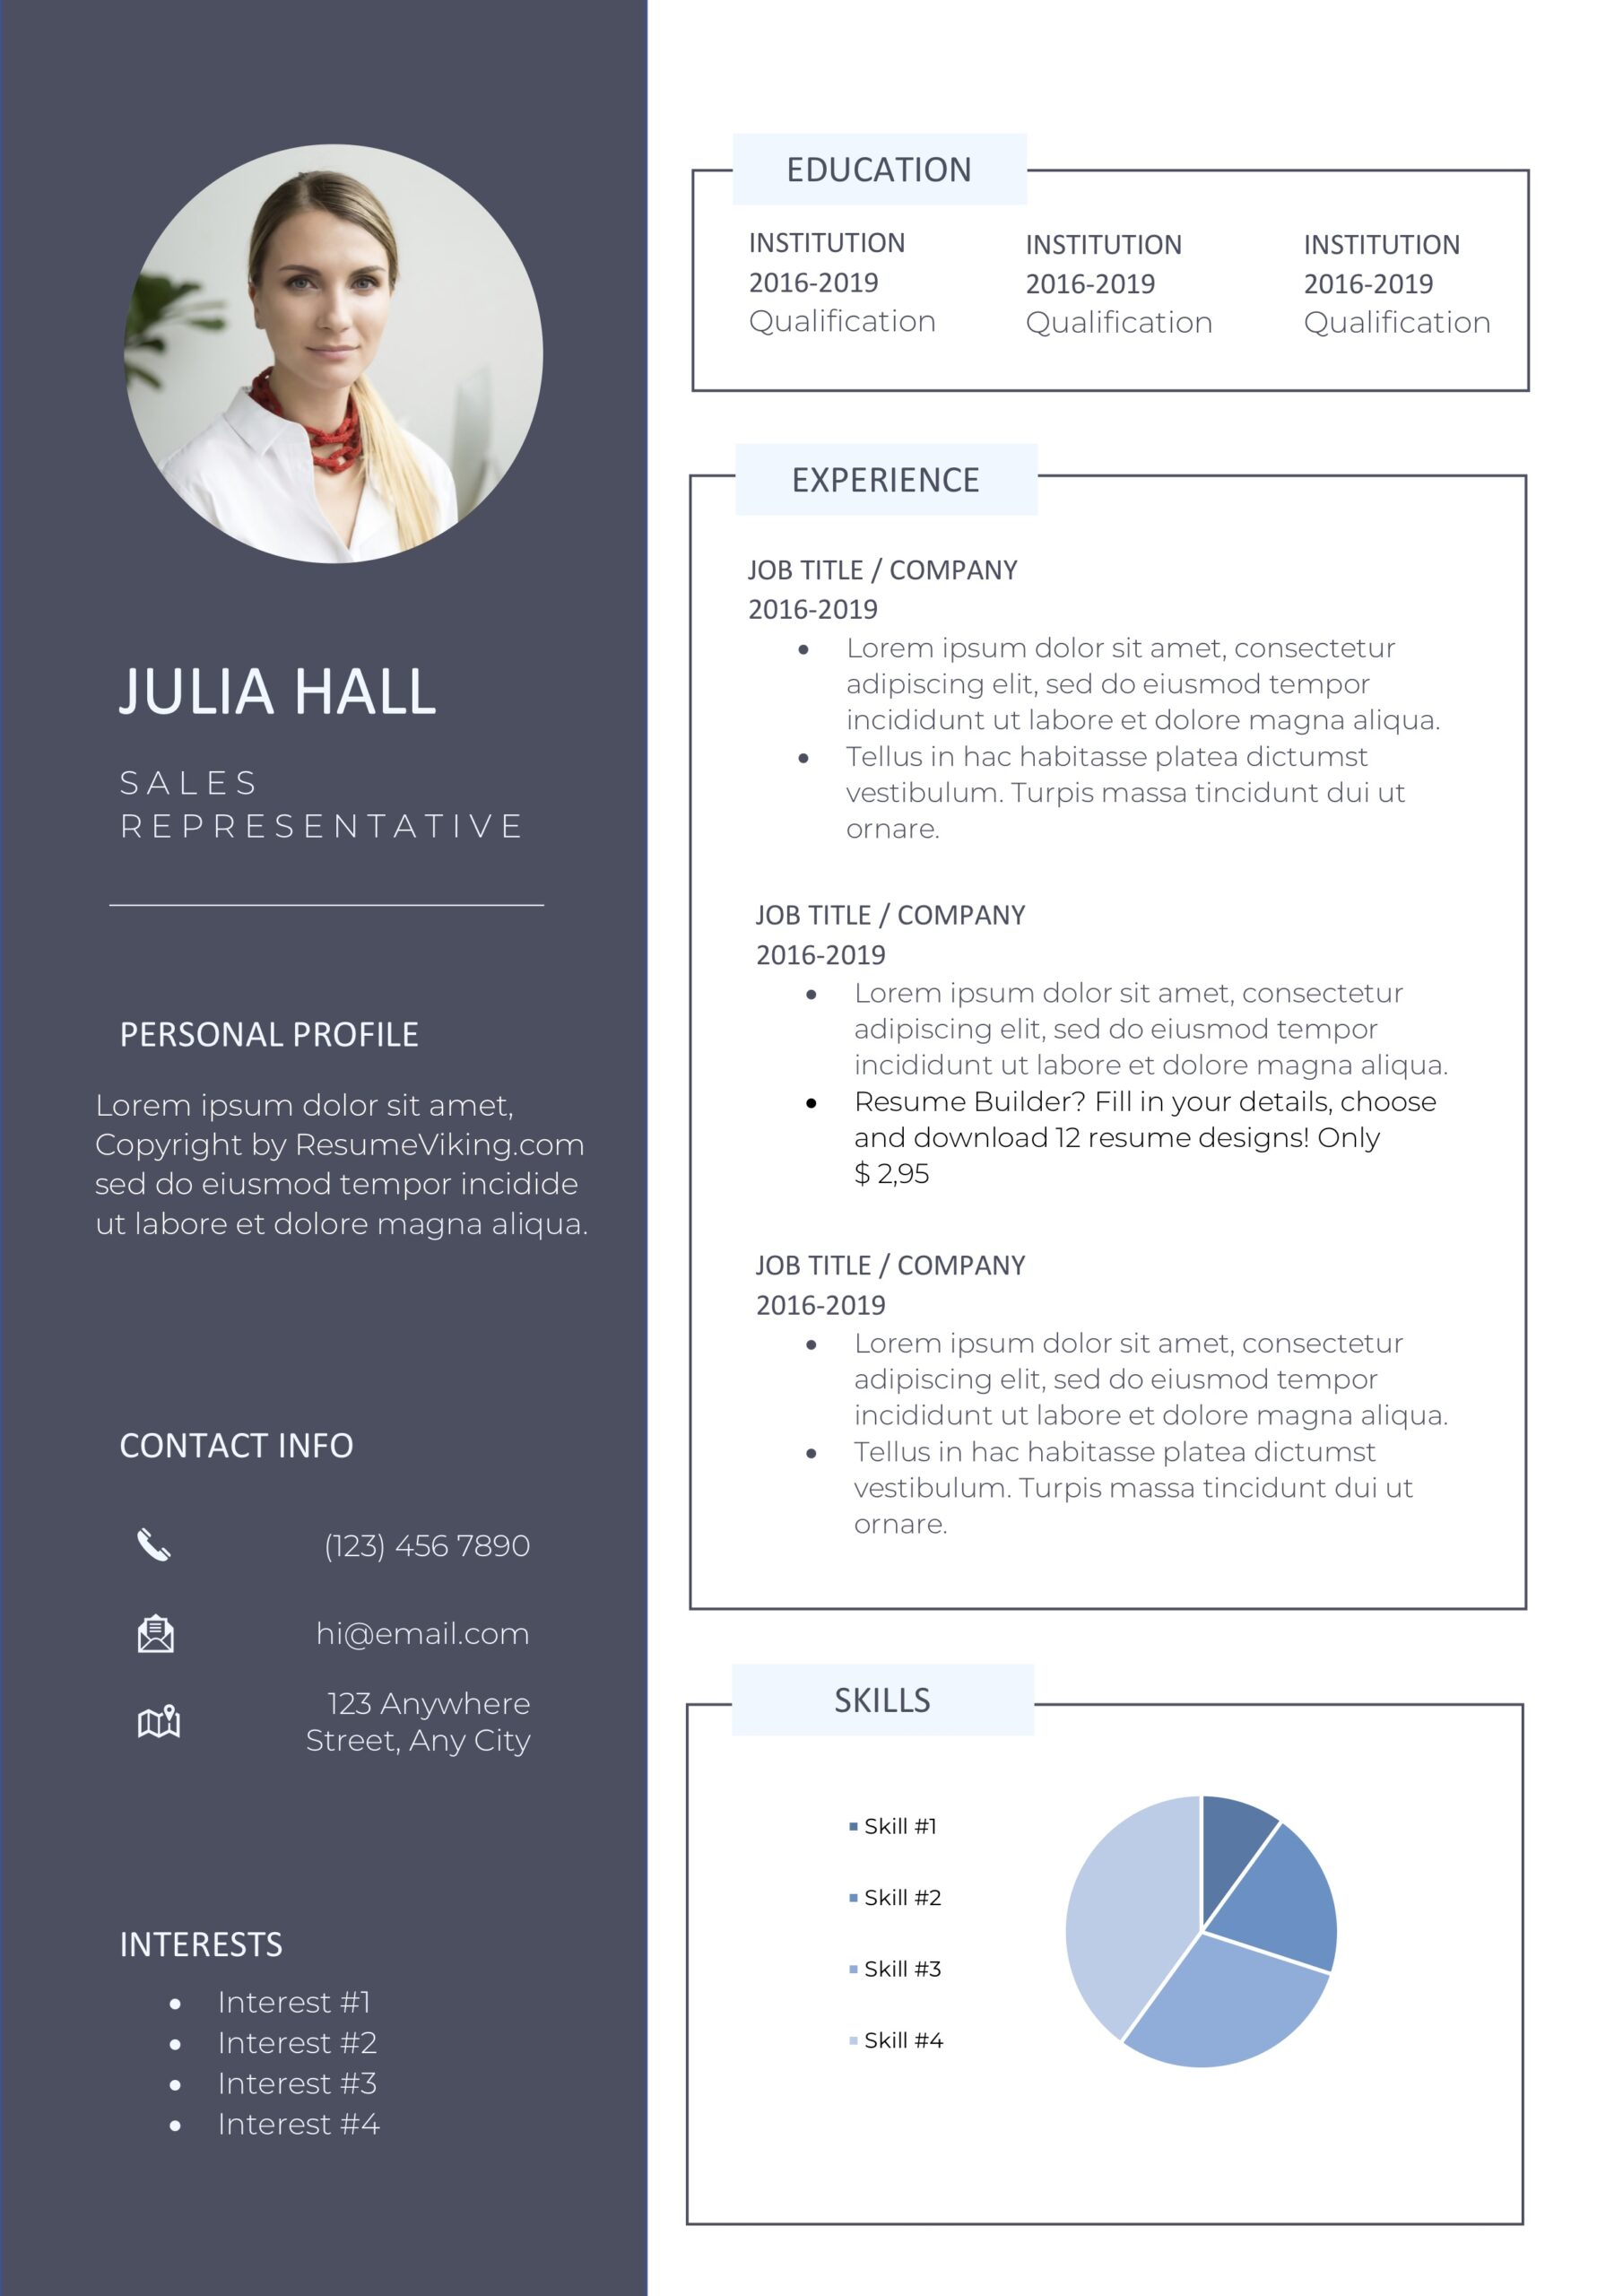 resume templates pdf word free downloads and guides types of grace resumeviking cpc Resume Types Of Resume Pdf